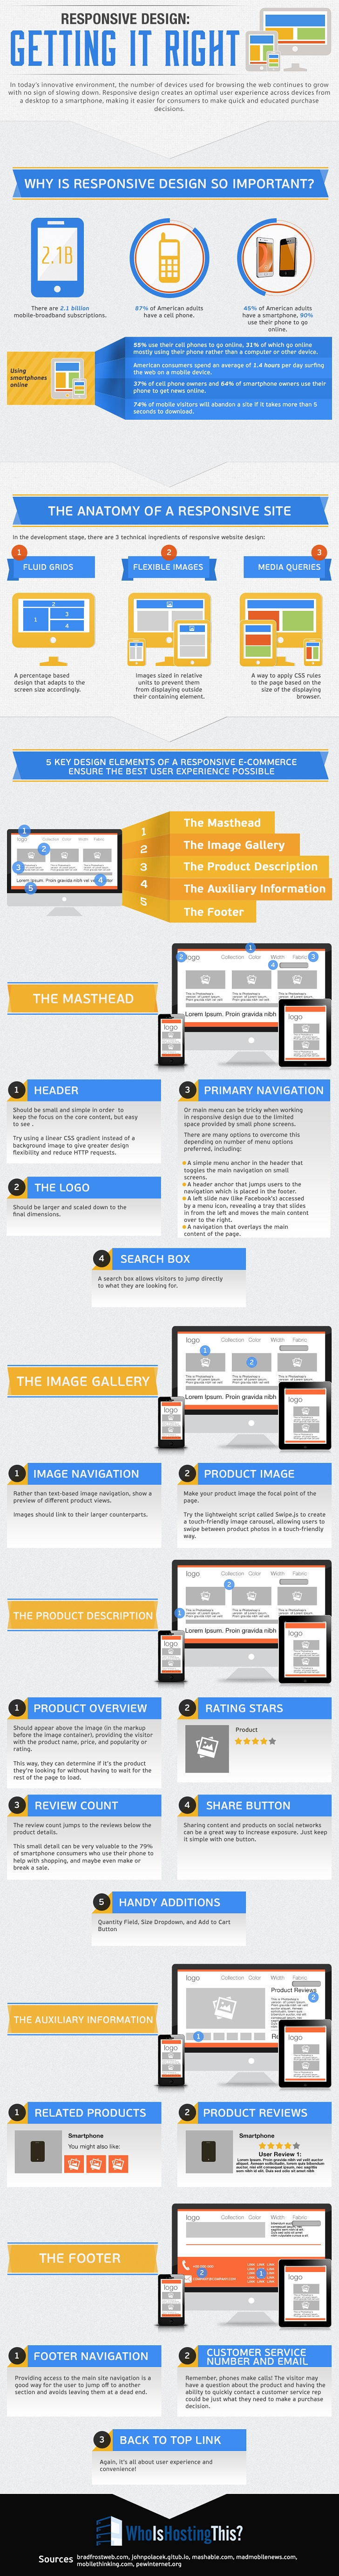 How to make responsive web design work